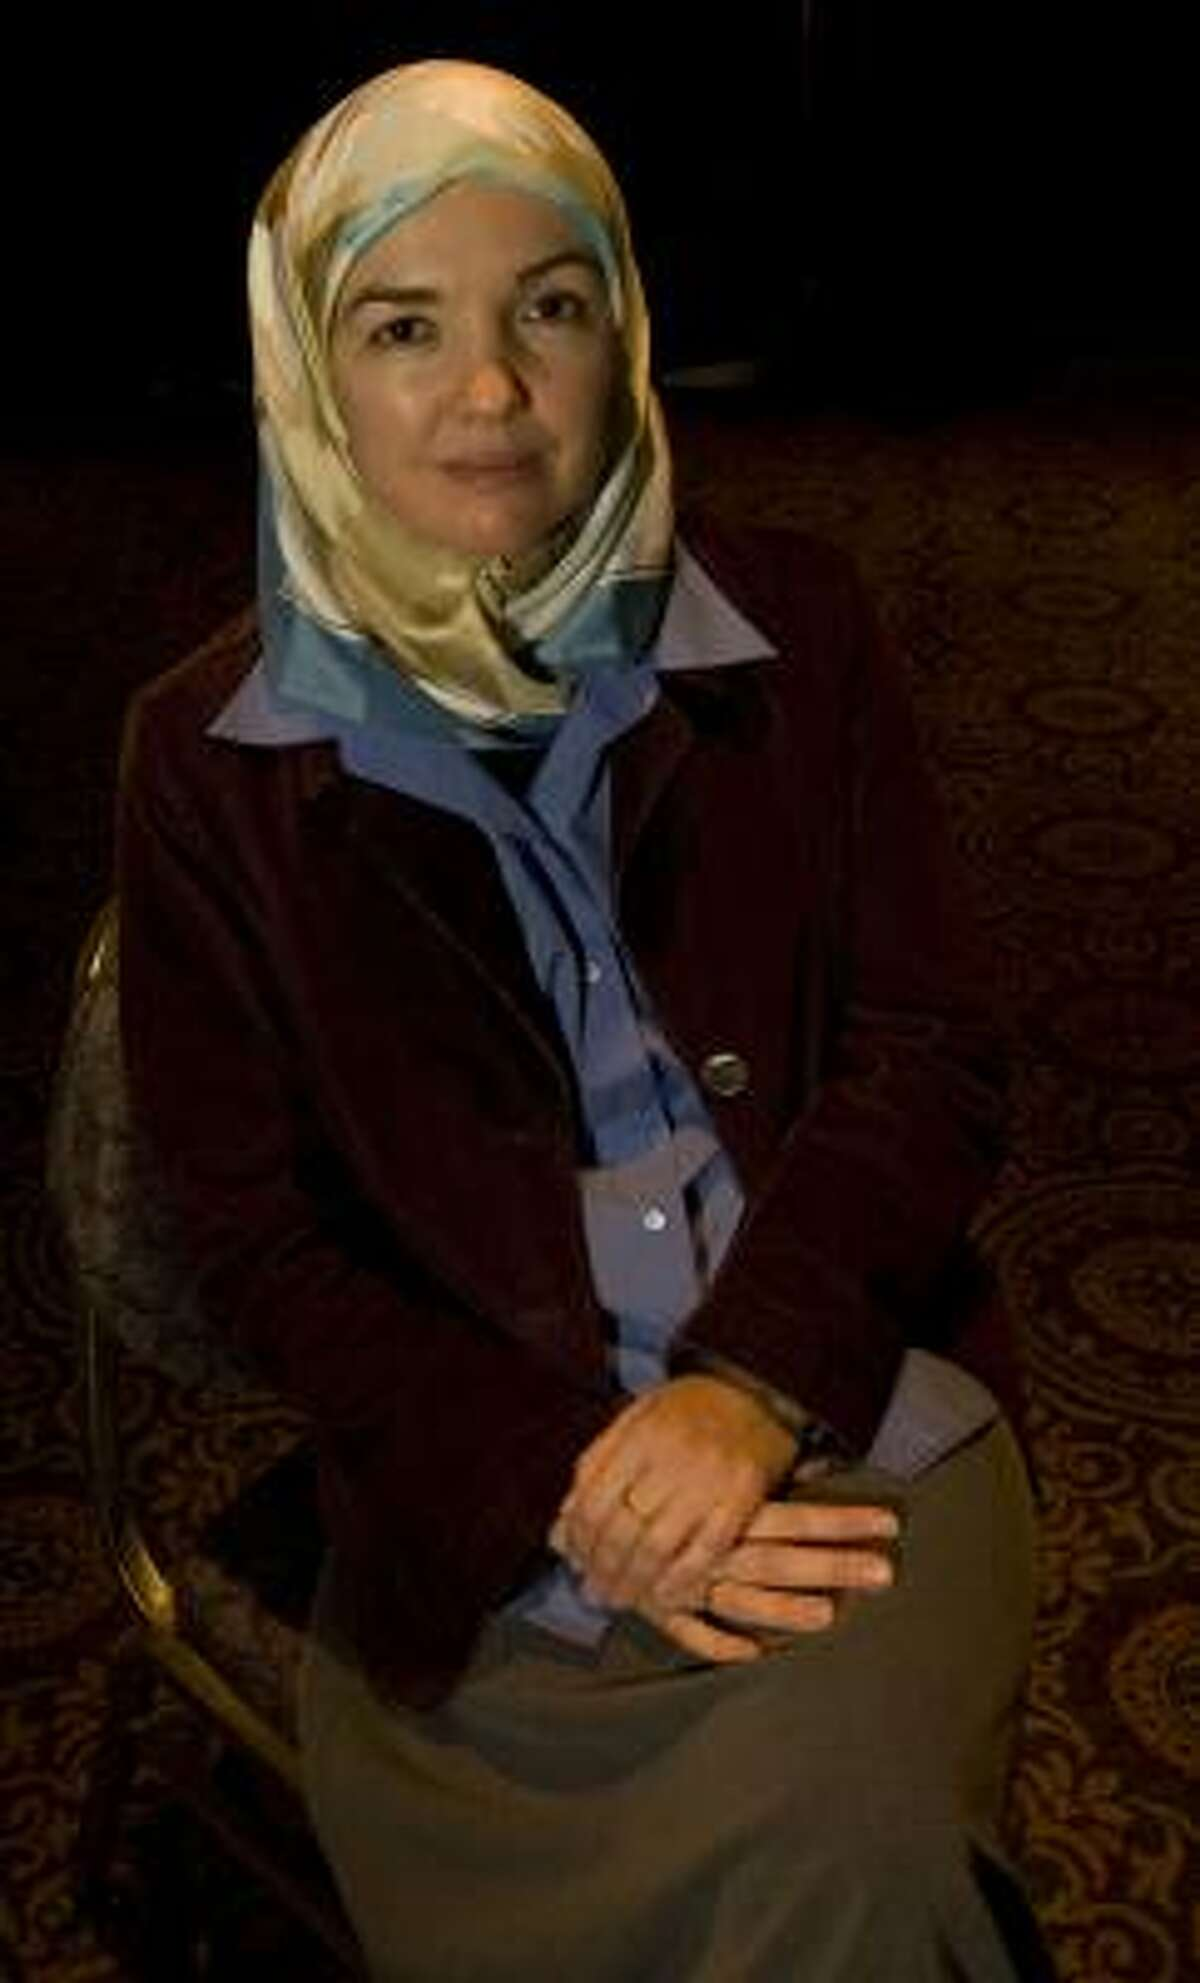 Ingrid Mattson is the first woman and first convert elected president of the Islamic Society of North America.